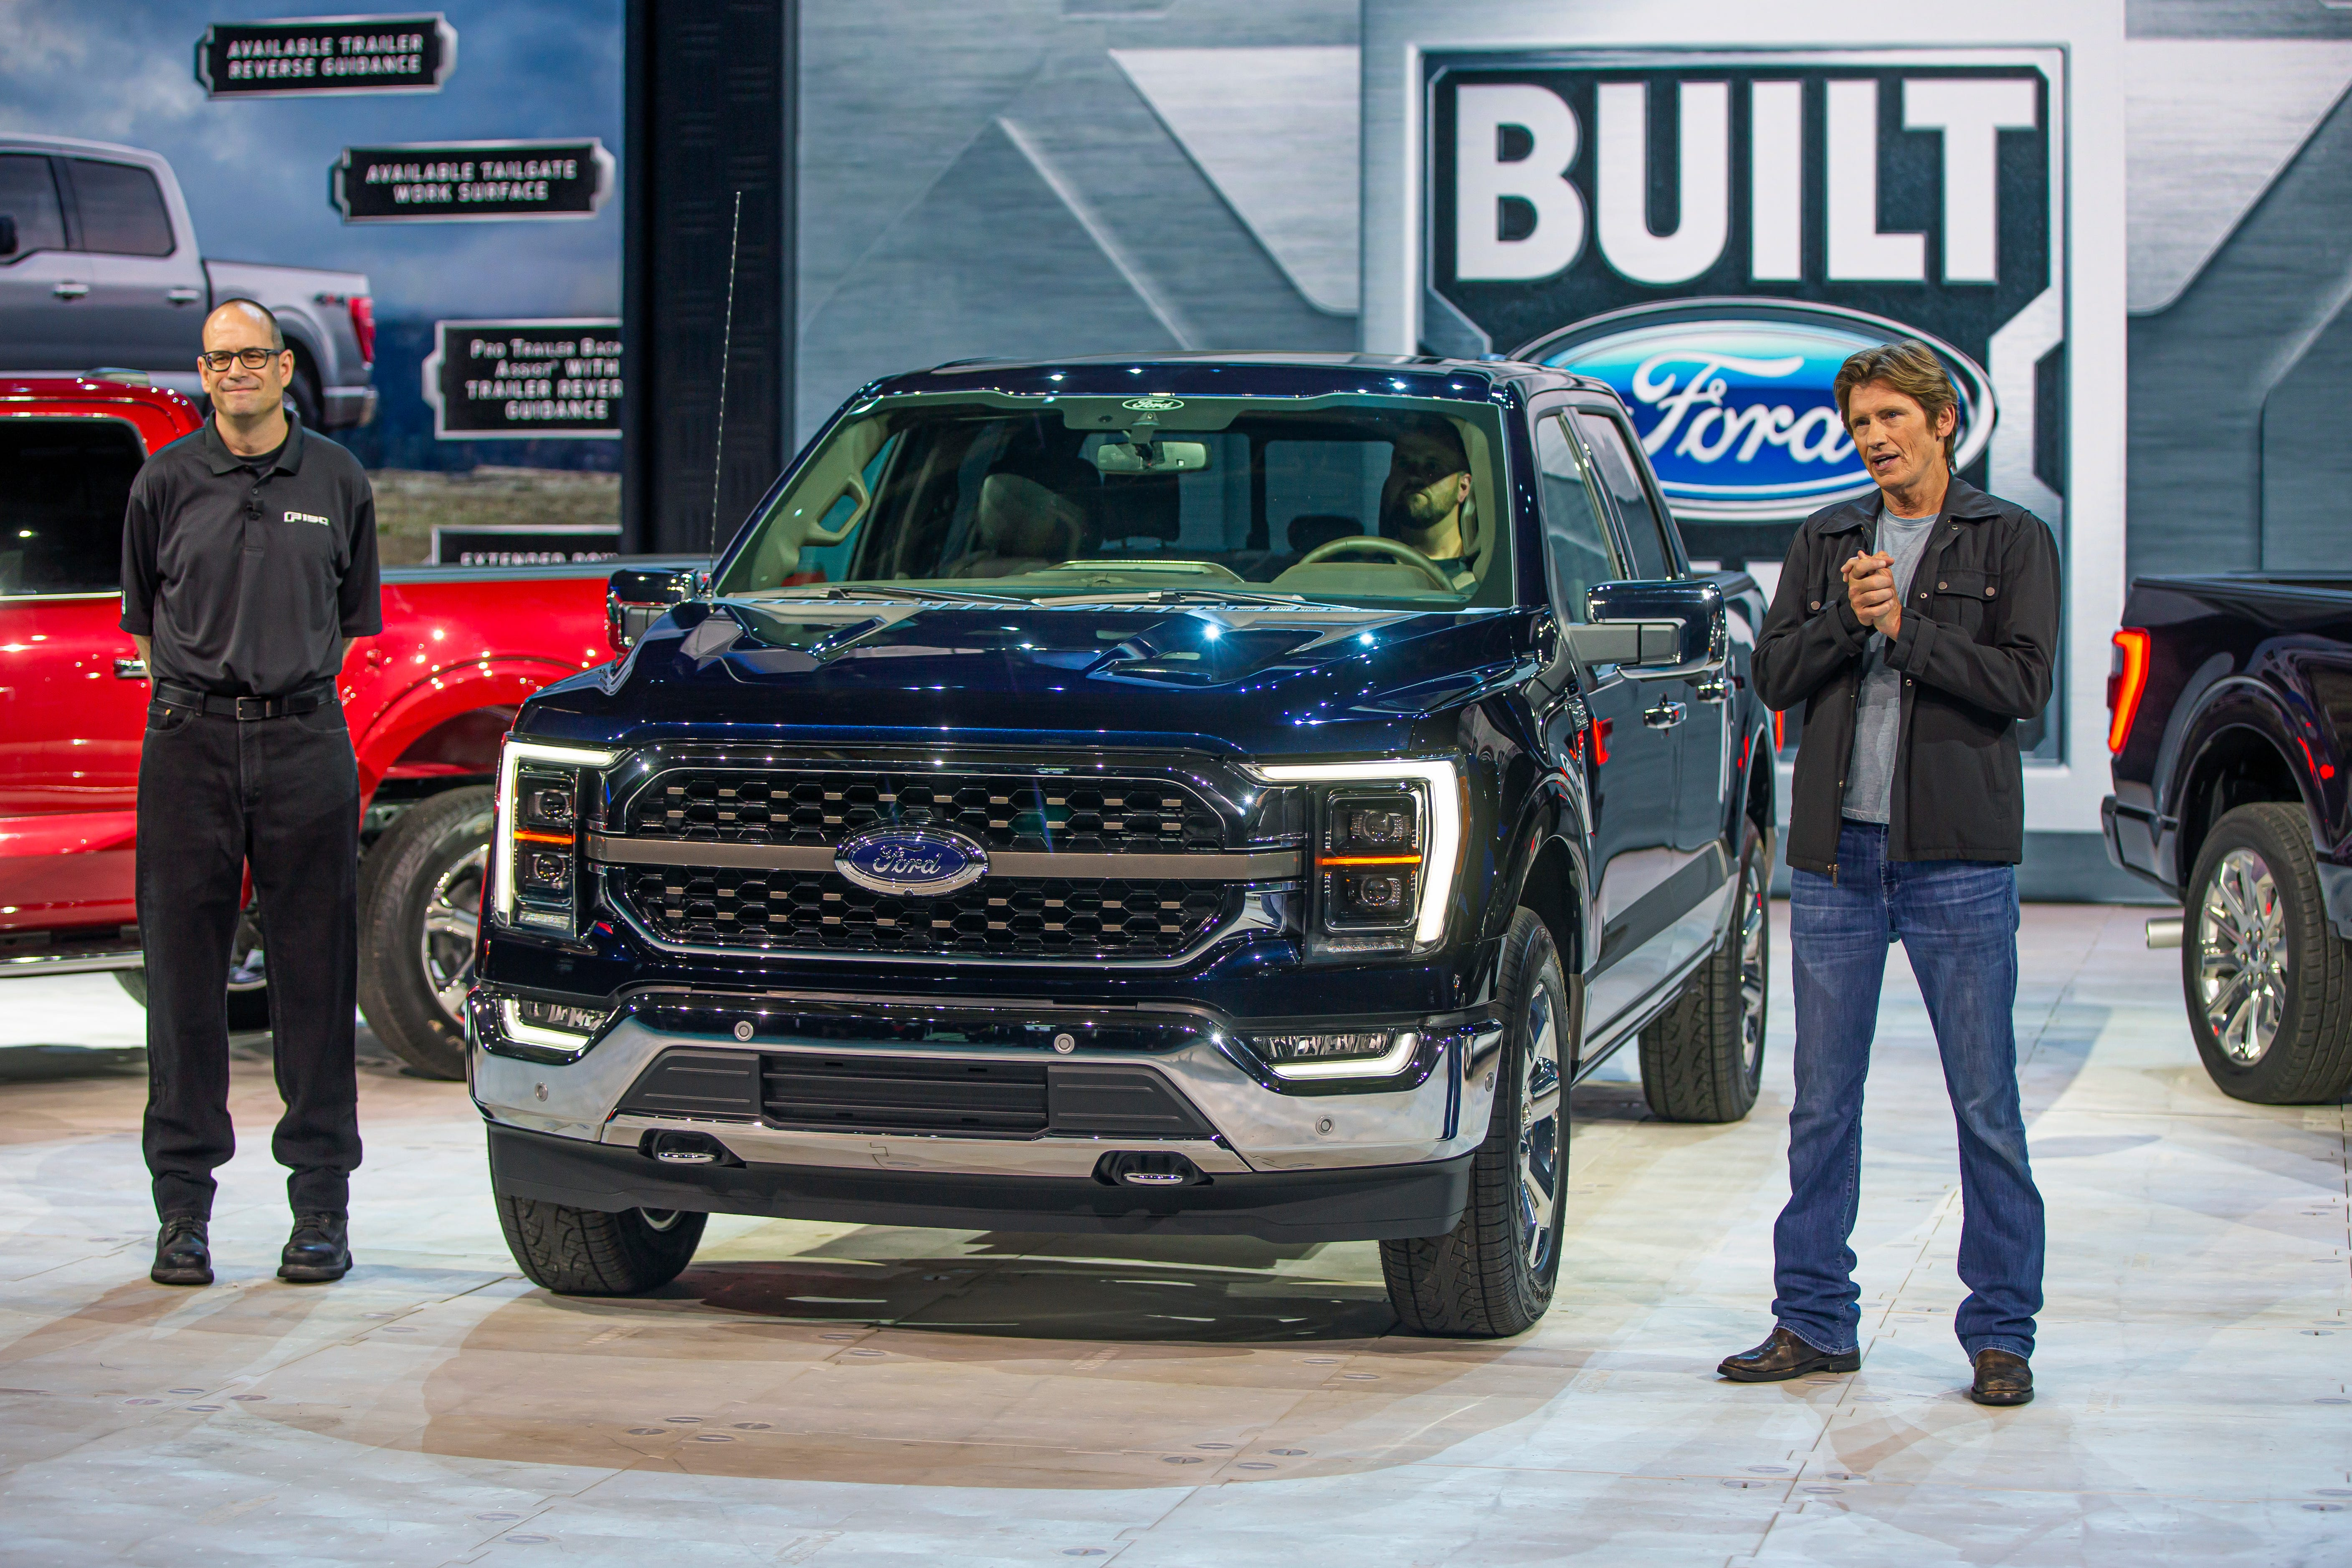 2021 F-series pickup truck makes debut